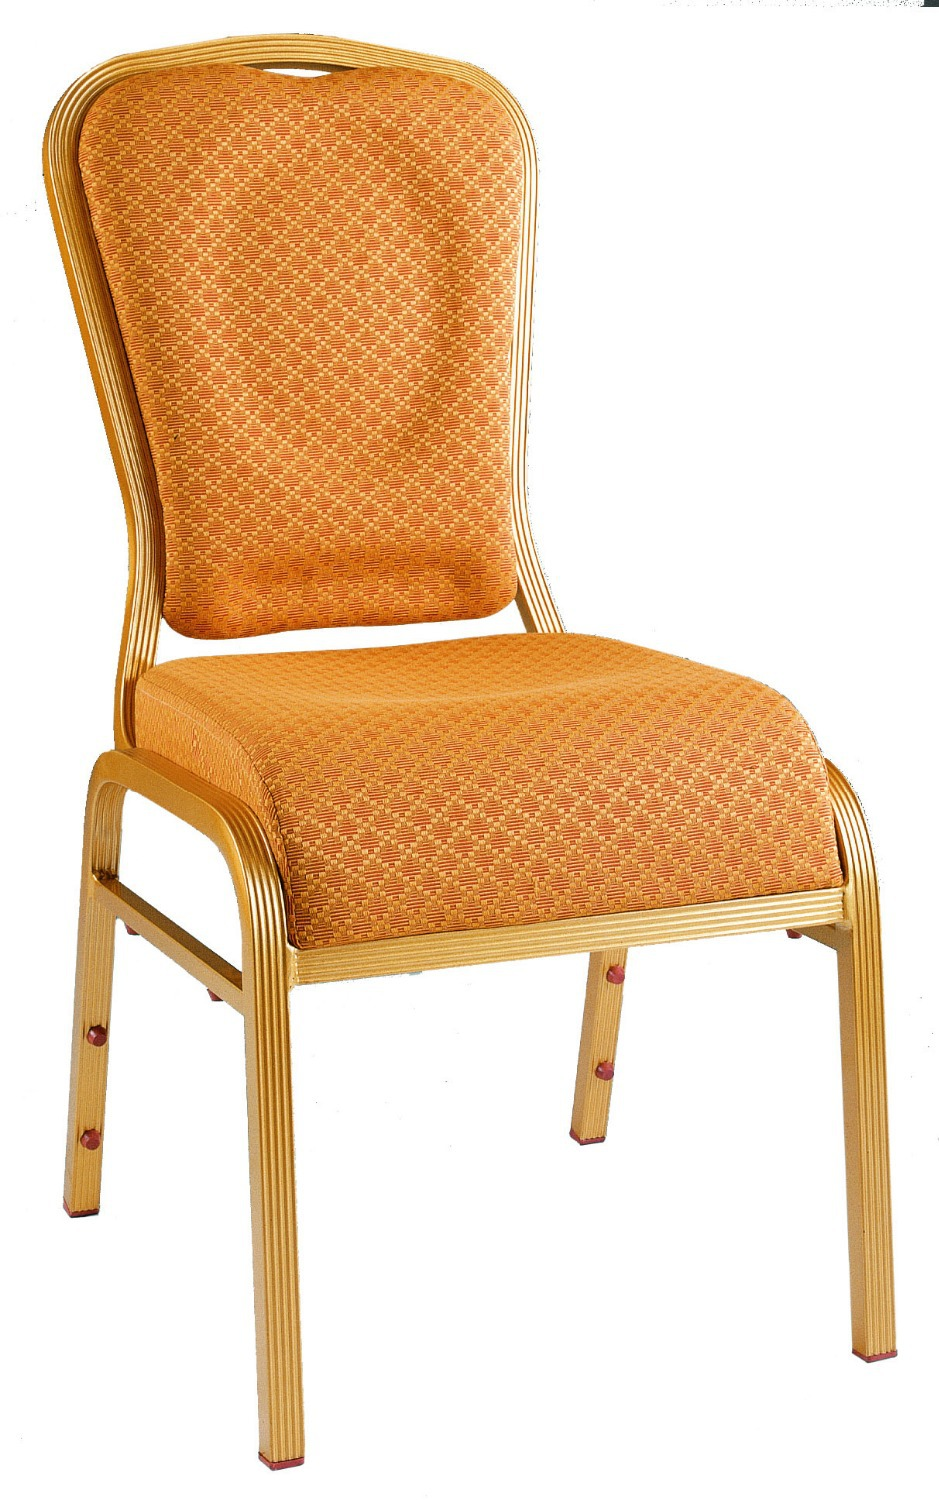 wholesale quality strong gold aluminum vip banquet chairs LQ-L13100 wholesale quality luxury strong woodgrain aluminum dining chairs lq l802